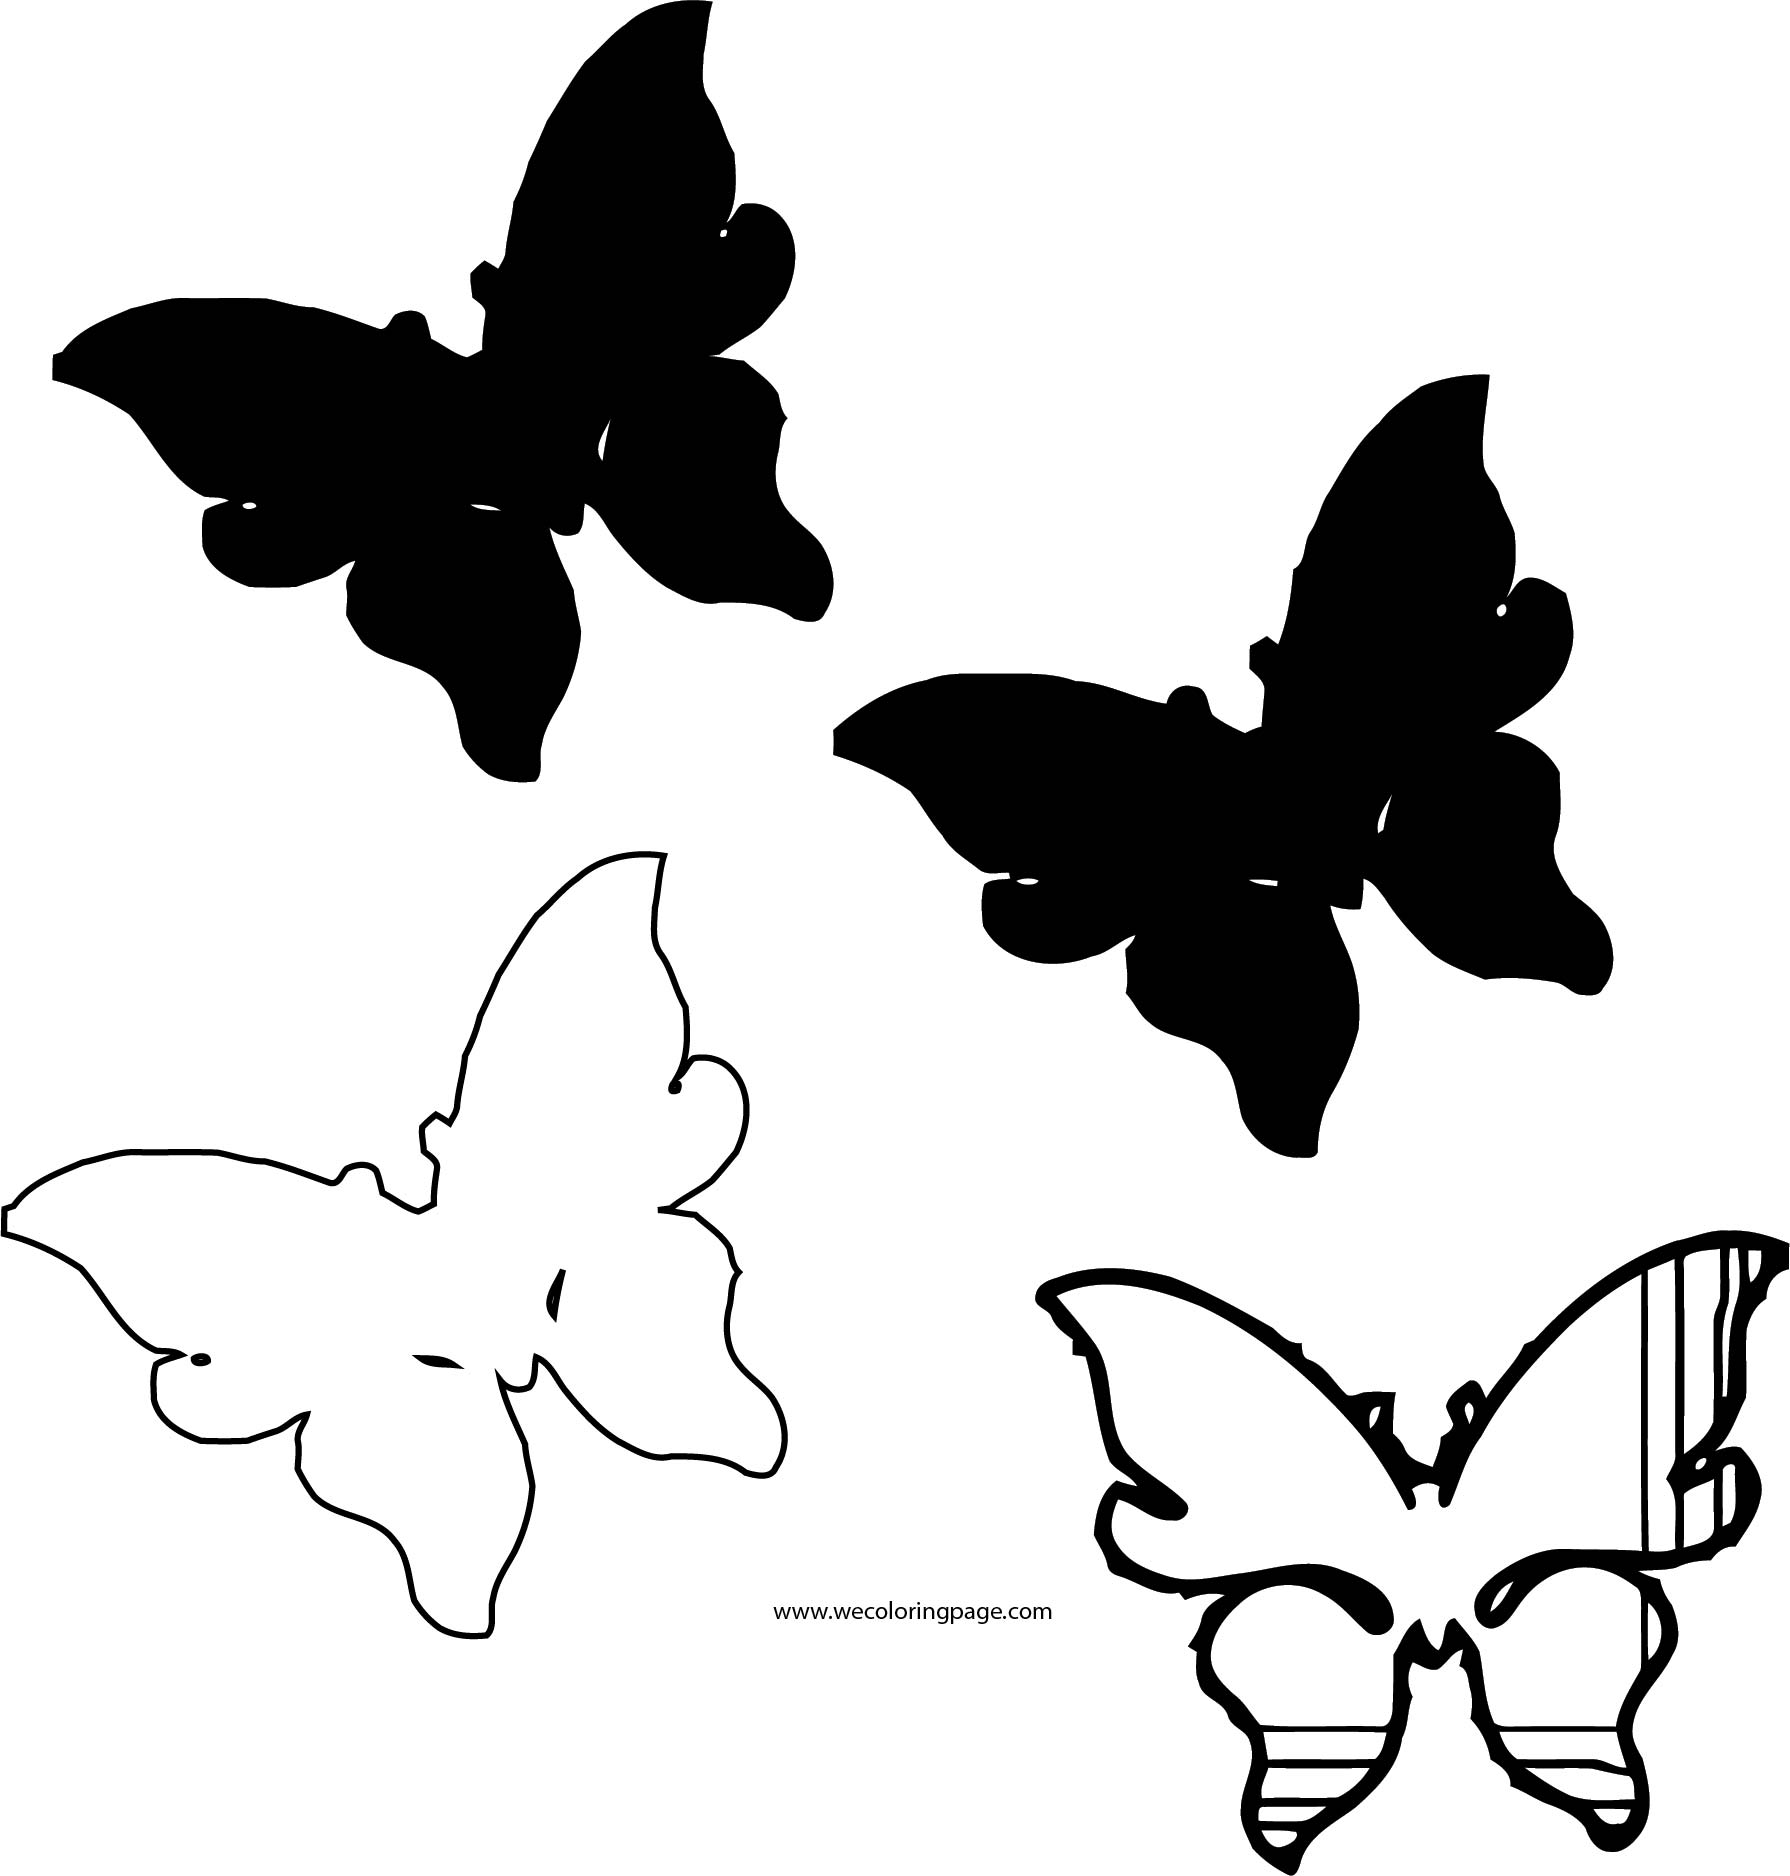 Butterfly Coloring Page Wecoloringpage 262